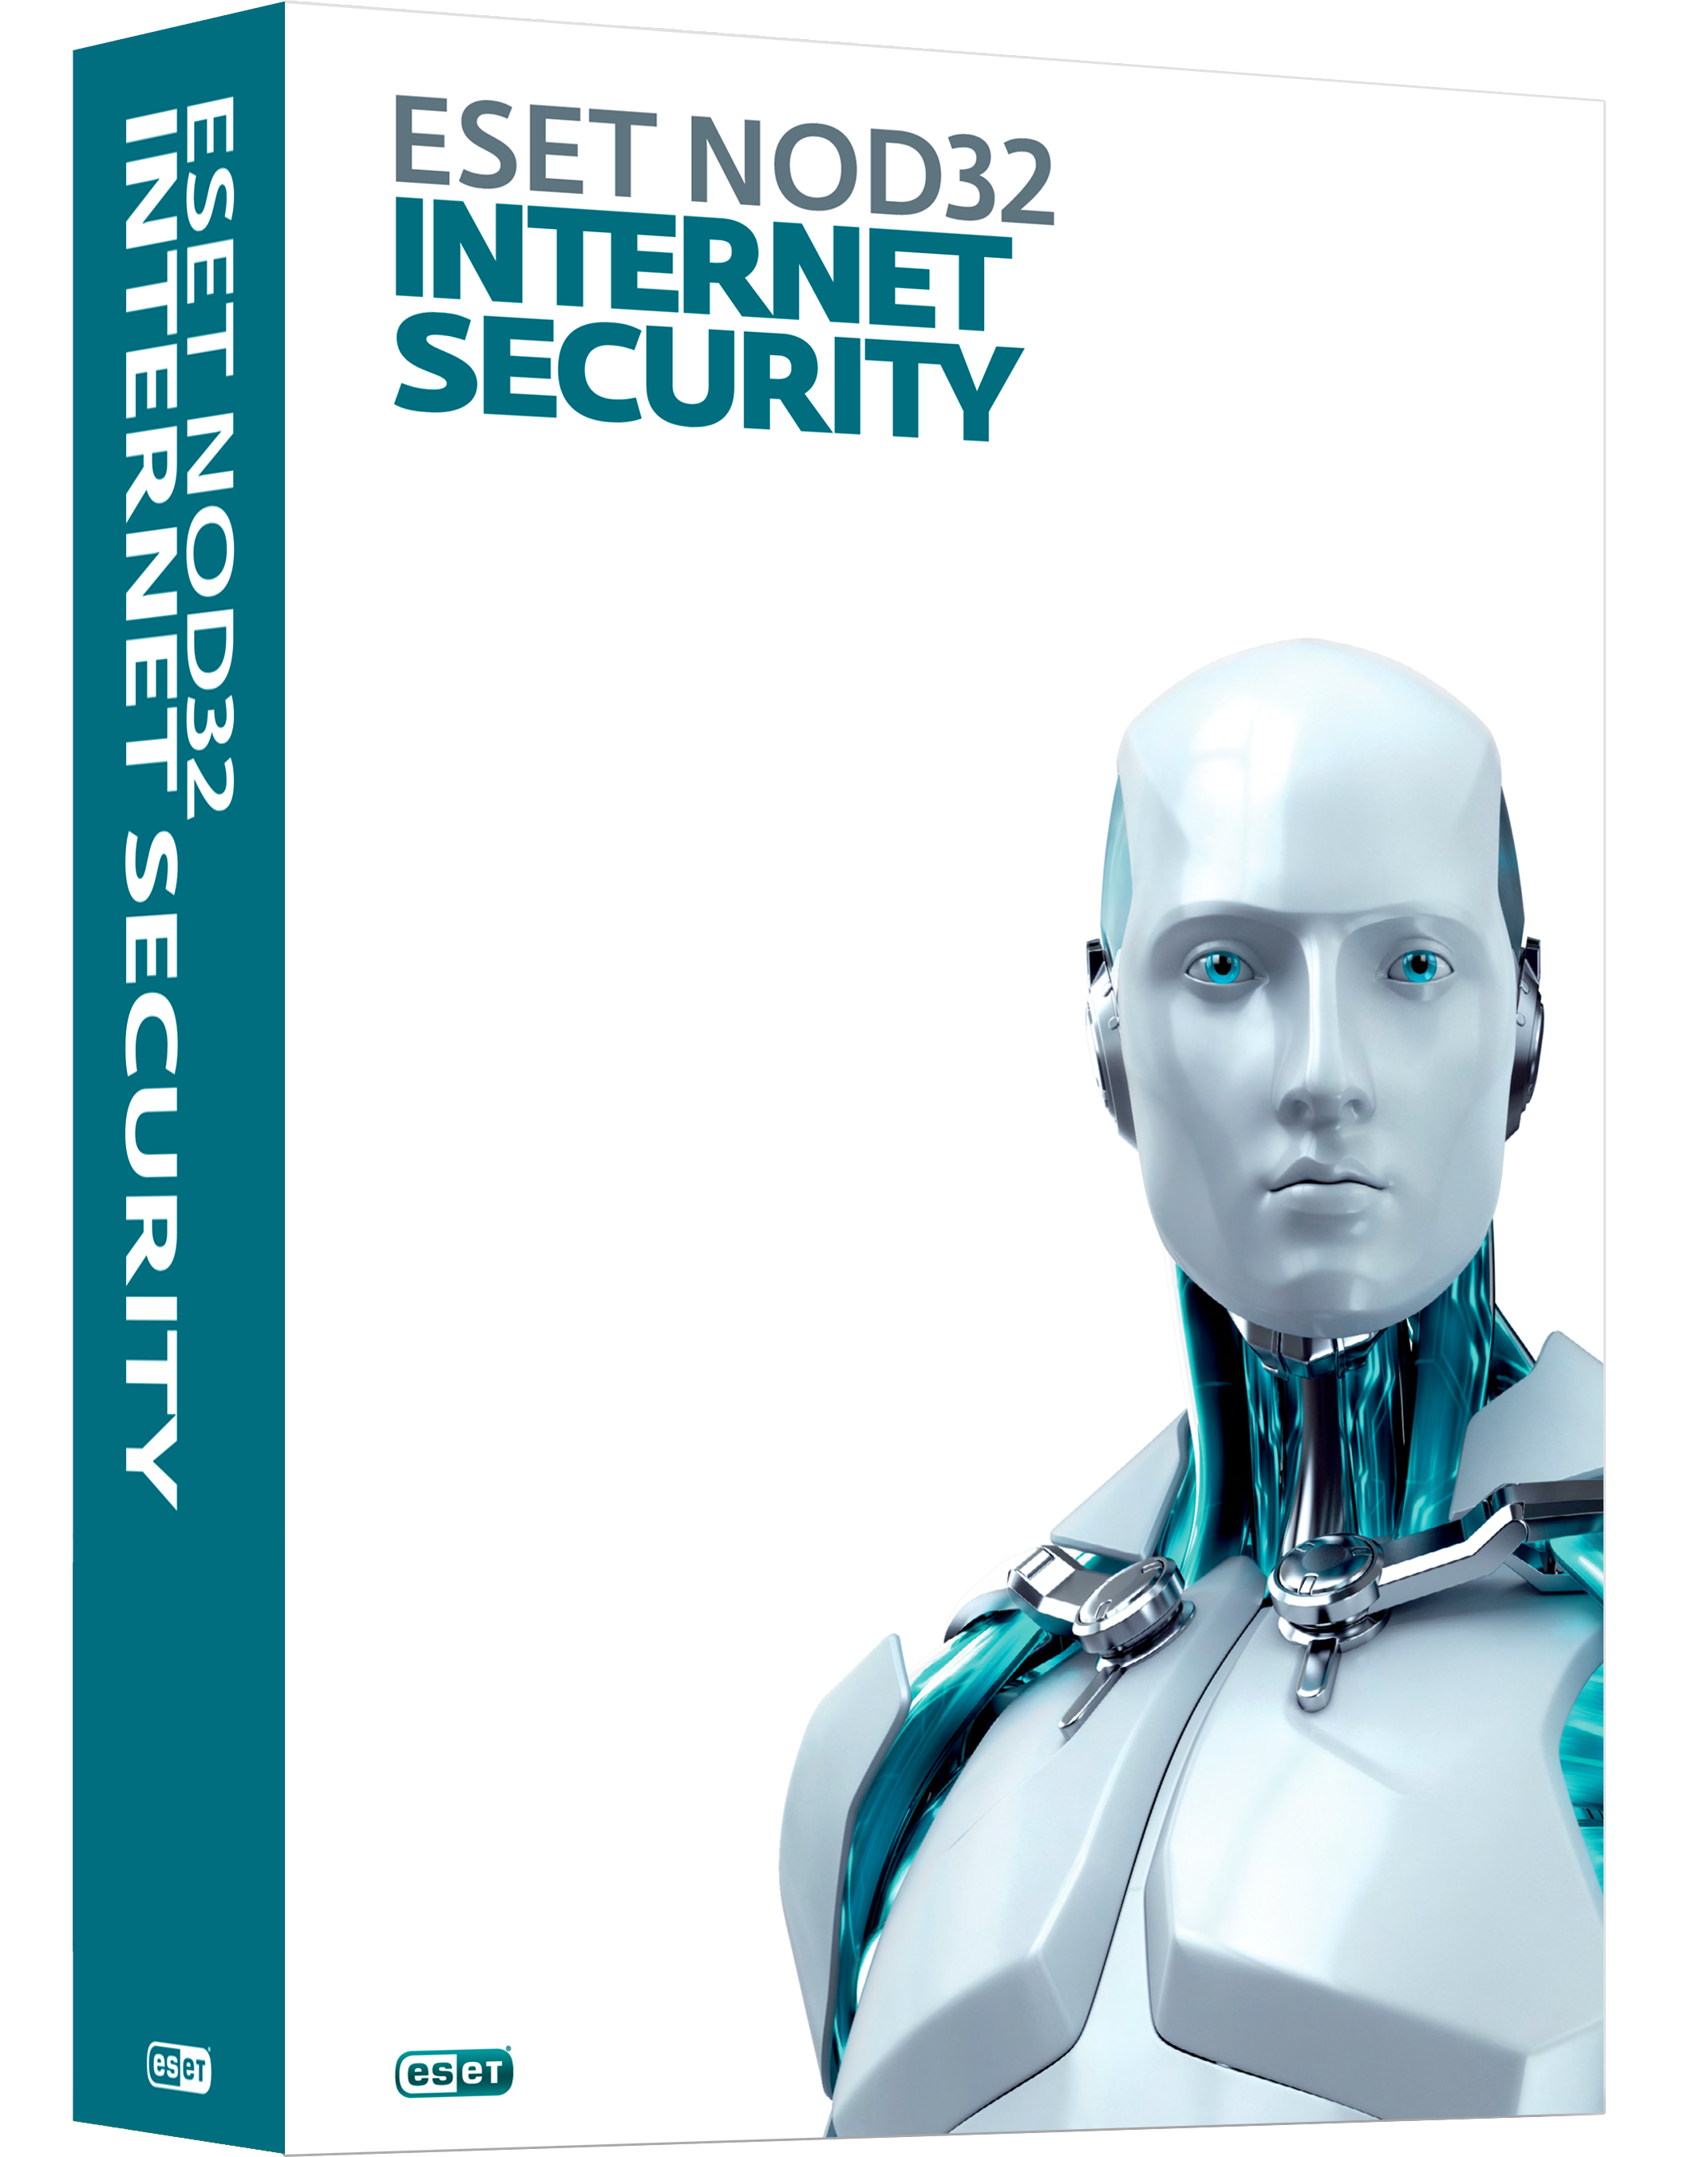 ESET NOD32 INTERNET SECURITY 5 лет 1 ПК Windows